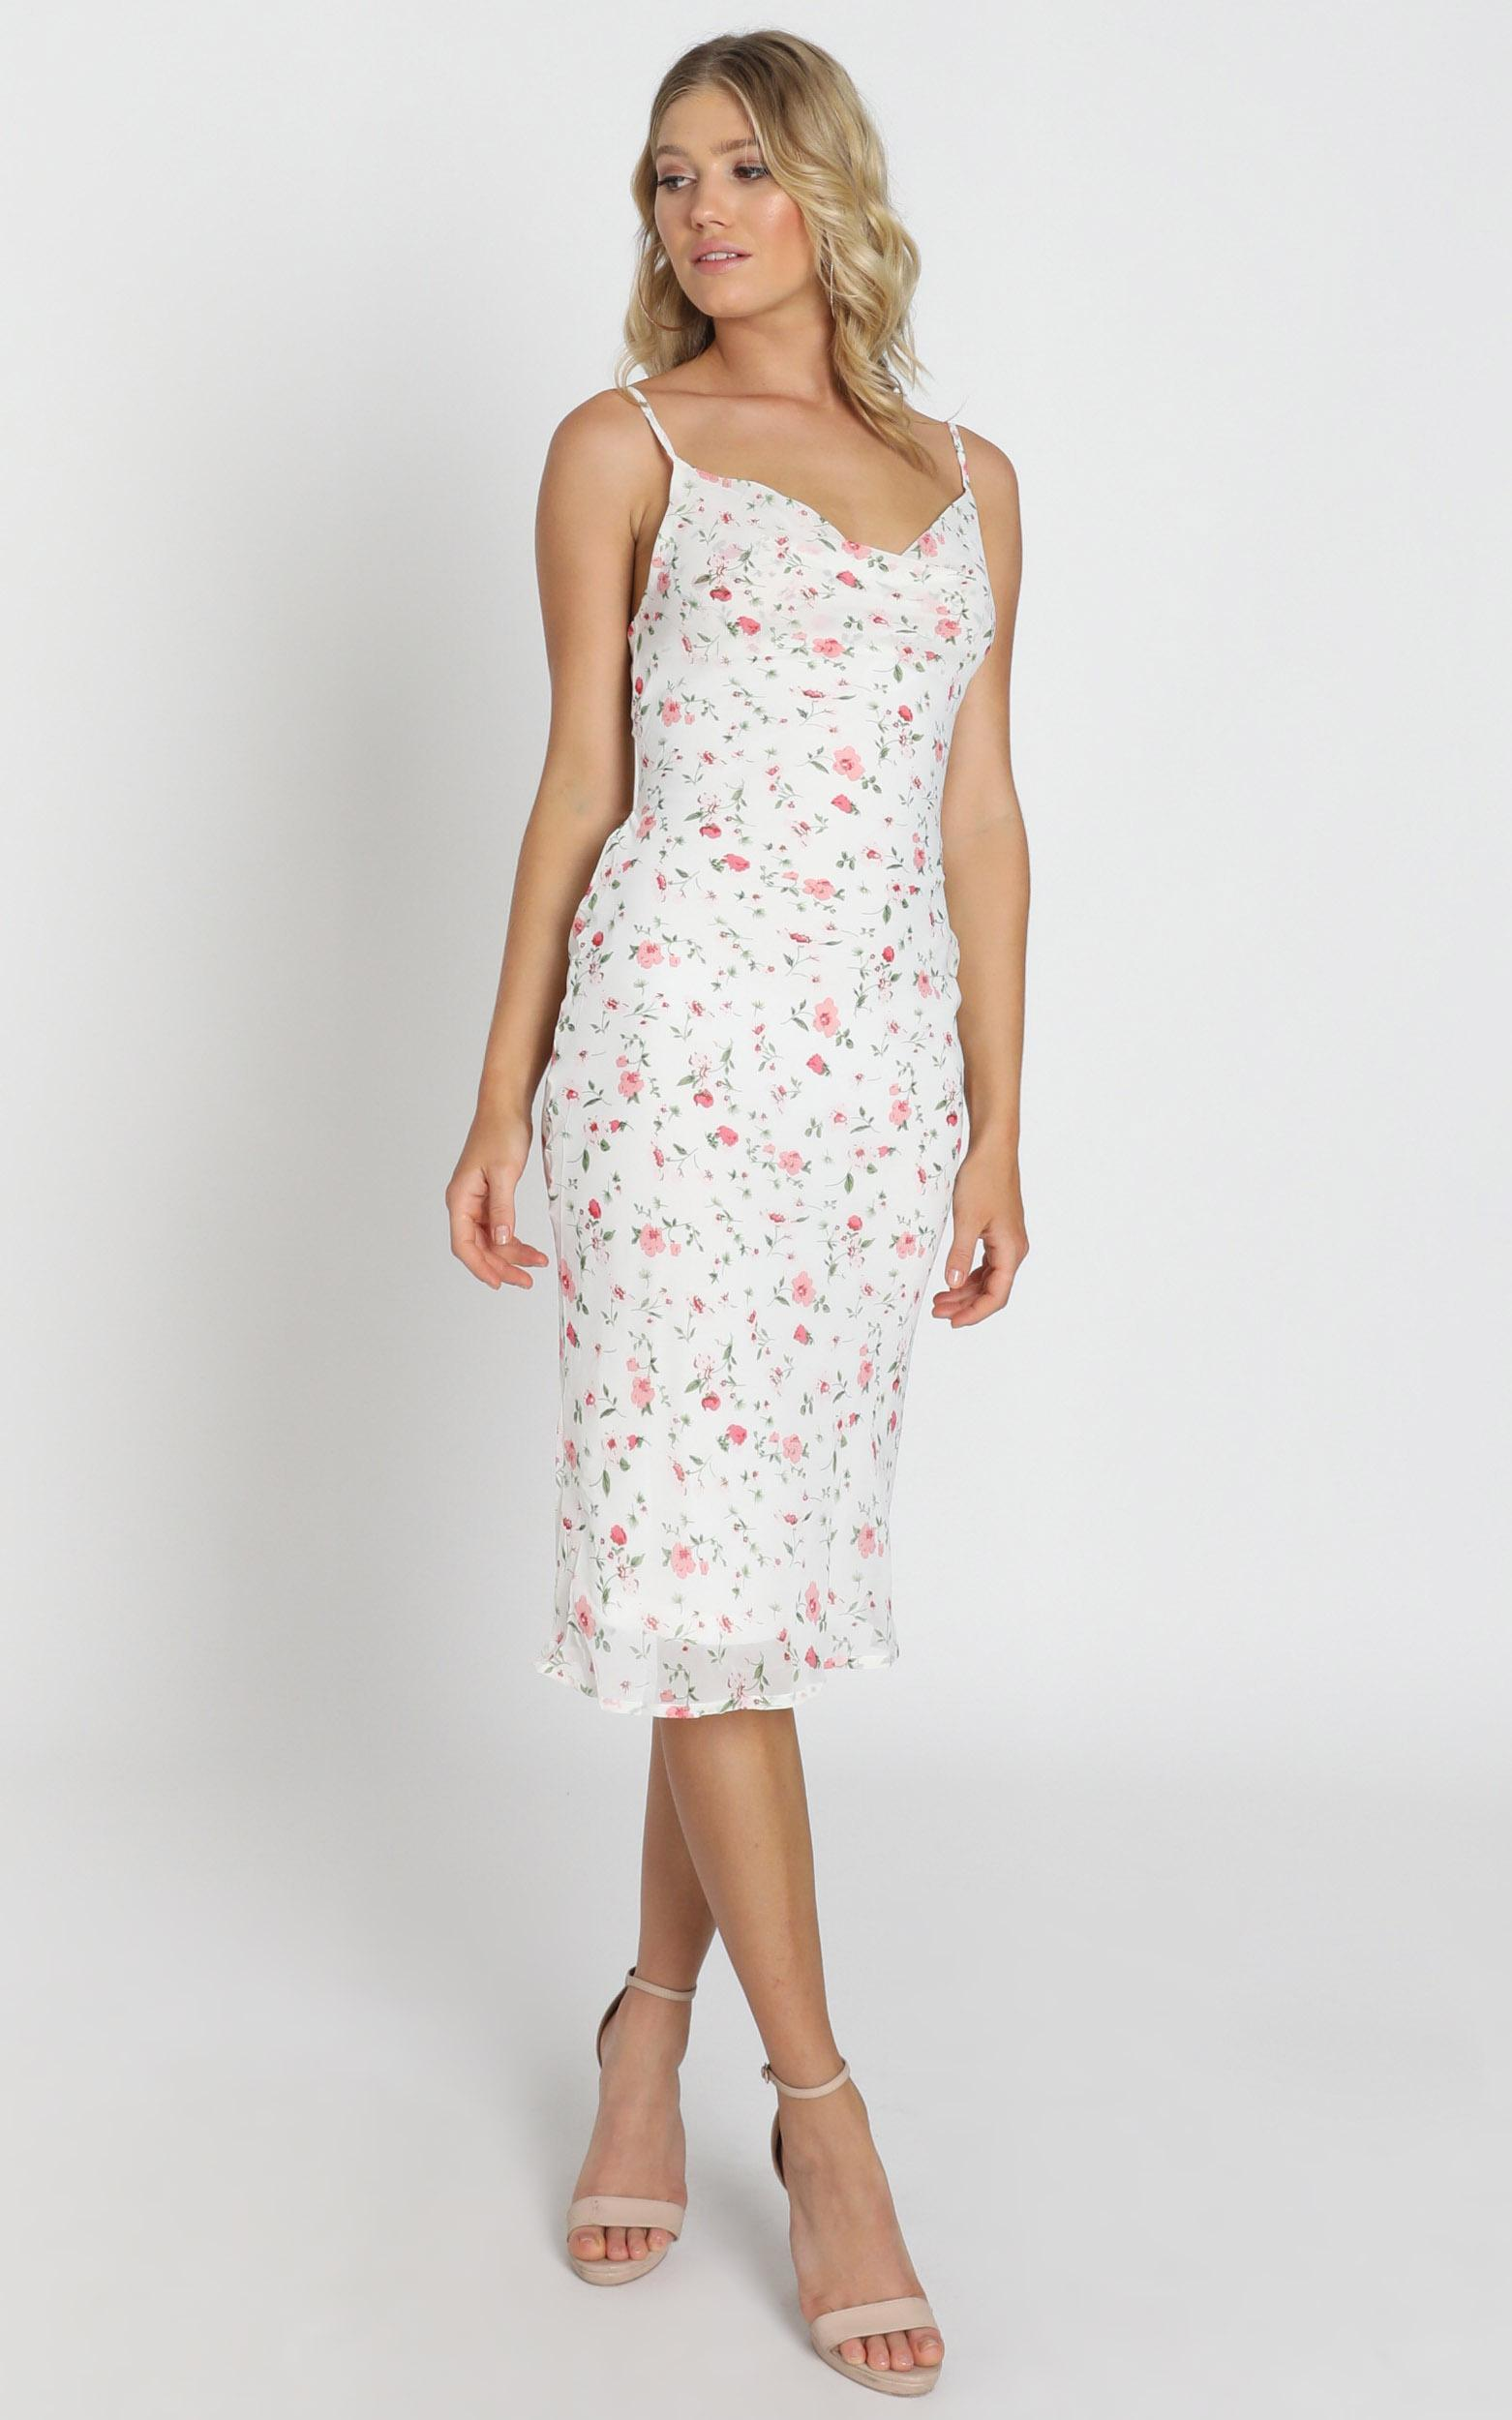 Elki Midi Dress in white floral - 6 (XS), White, hi-res image number null